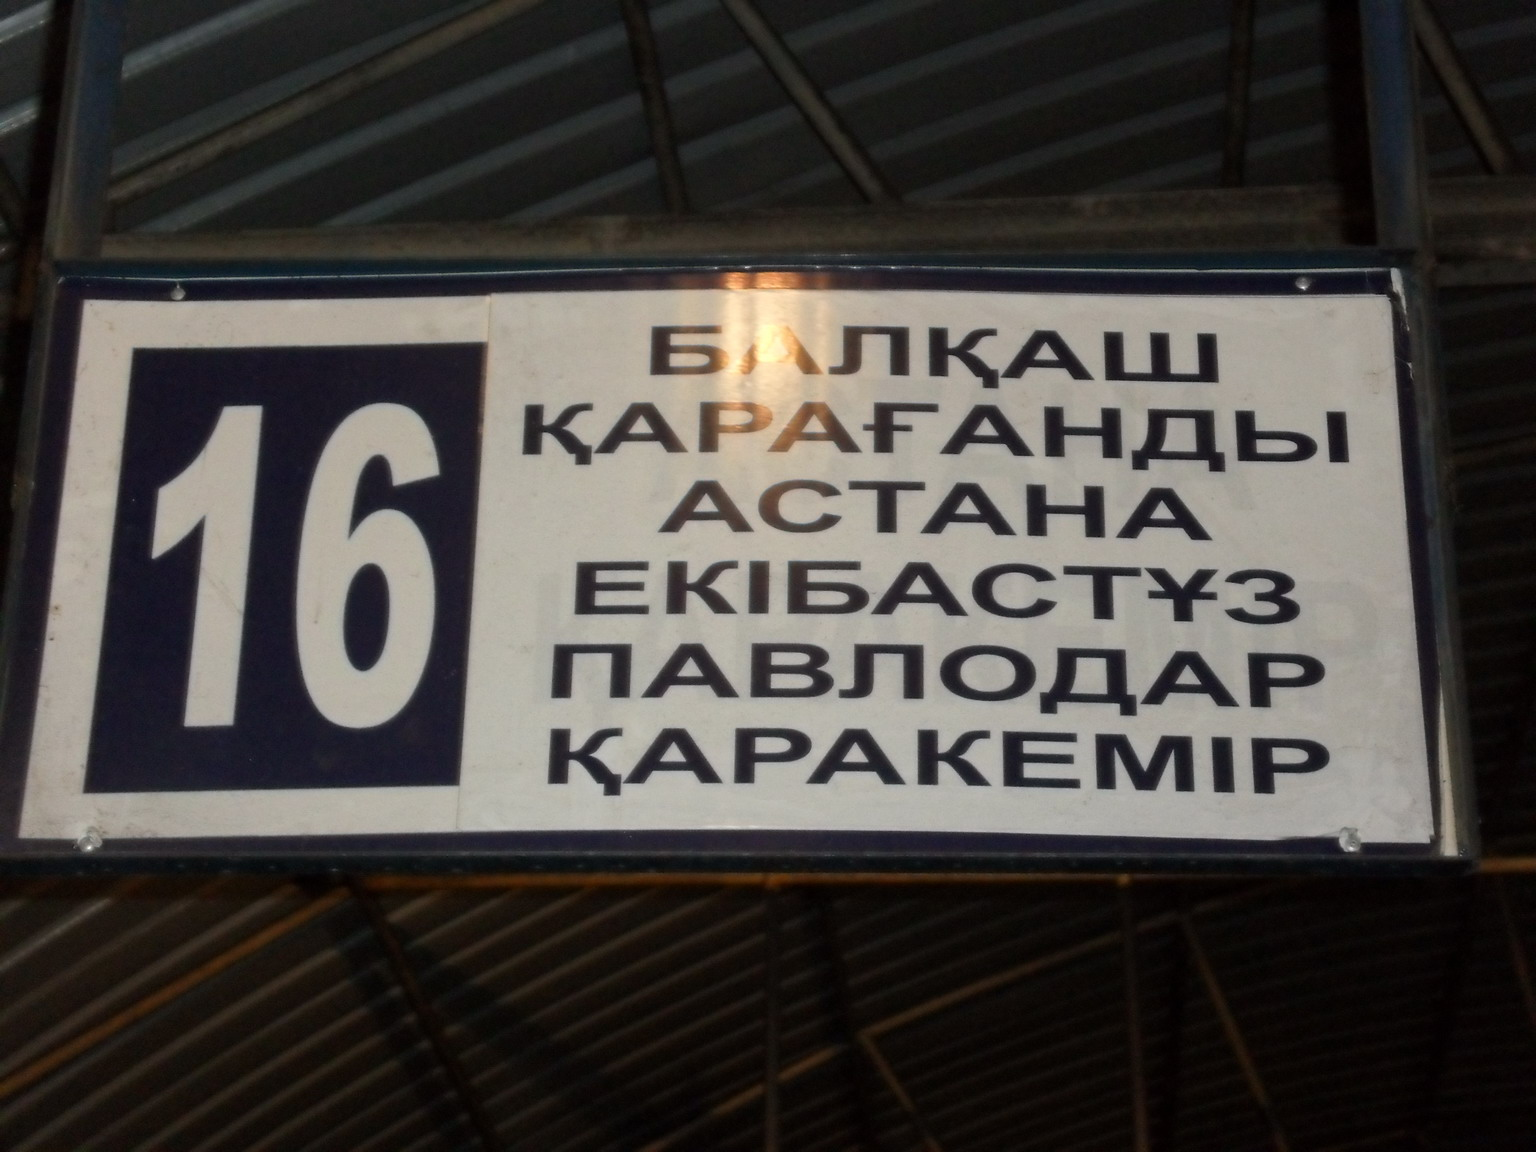 Bus station sign in Russian